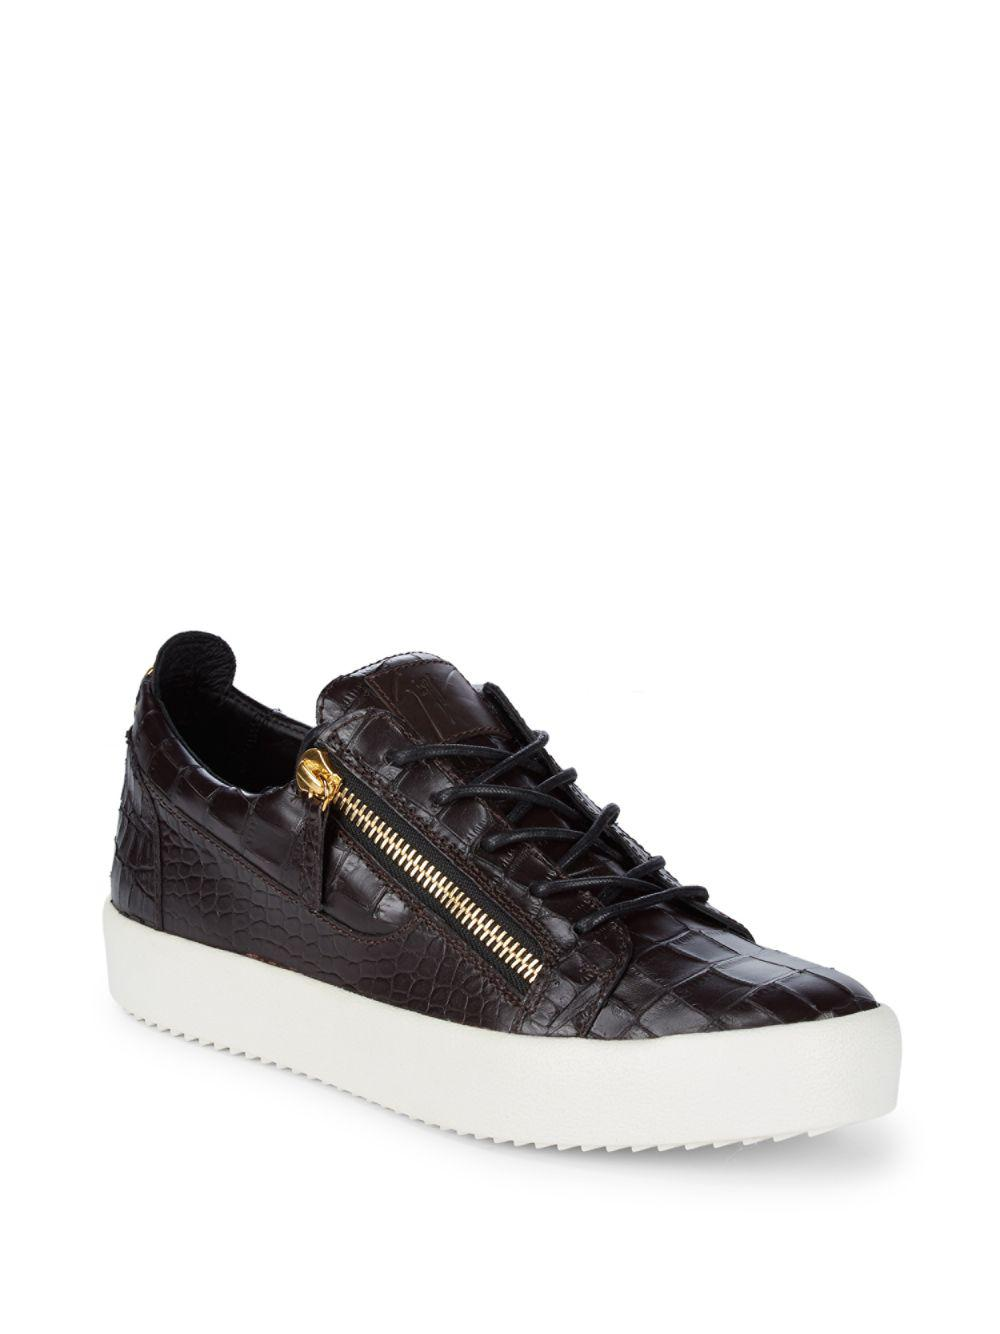 bb285b19dd4d2 Giuseppe Zanotti Crocodile Embossed Leather Sneakers in Brown for ...